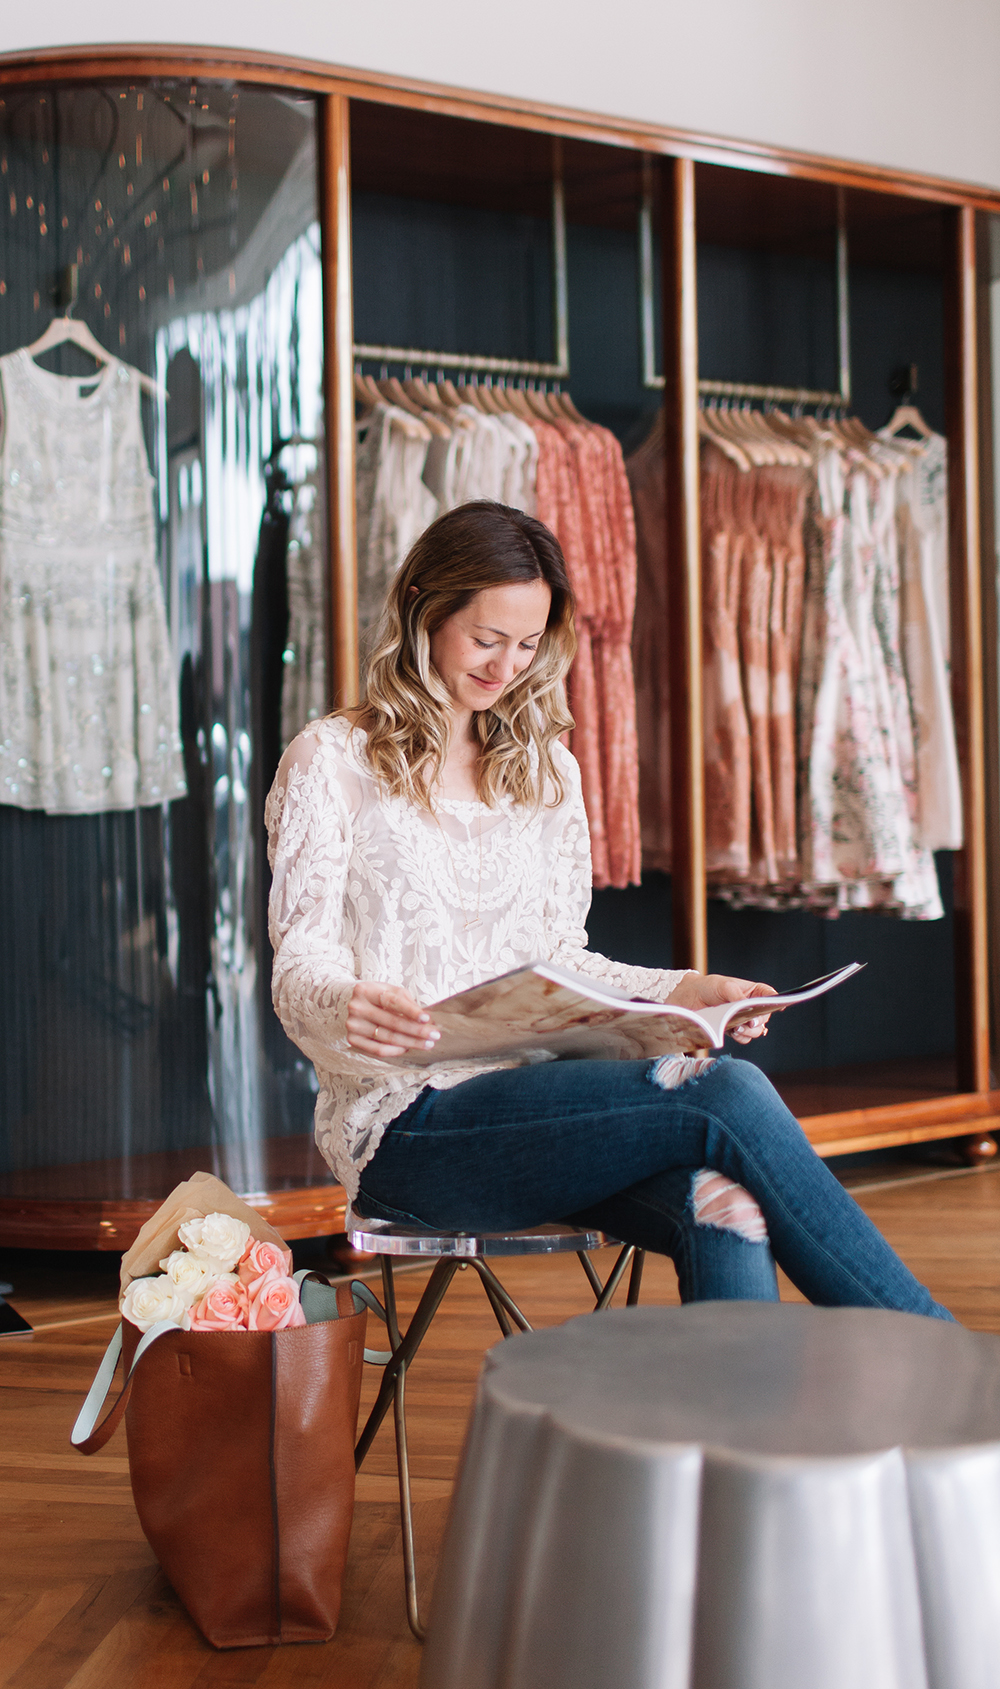 livvyland-blog-bhldn-store-front-houston-texas-bridal-salon-wedding-dress-shopping-austin-texas-fashion-blogger-olivia-watson-kayla-snell-photography-4